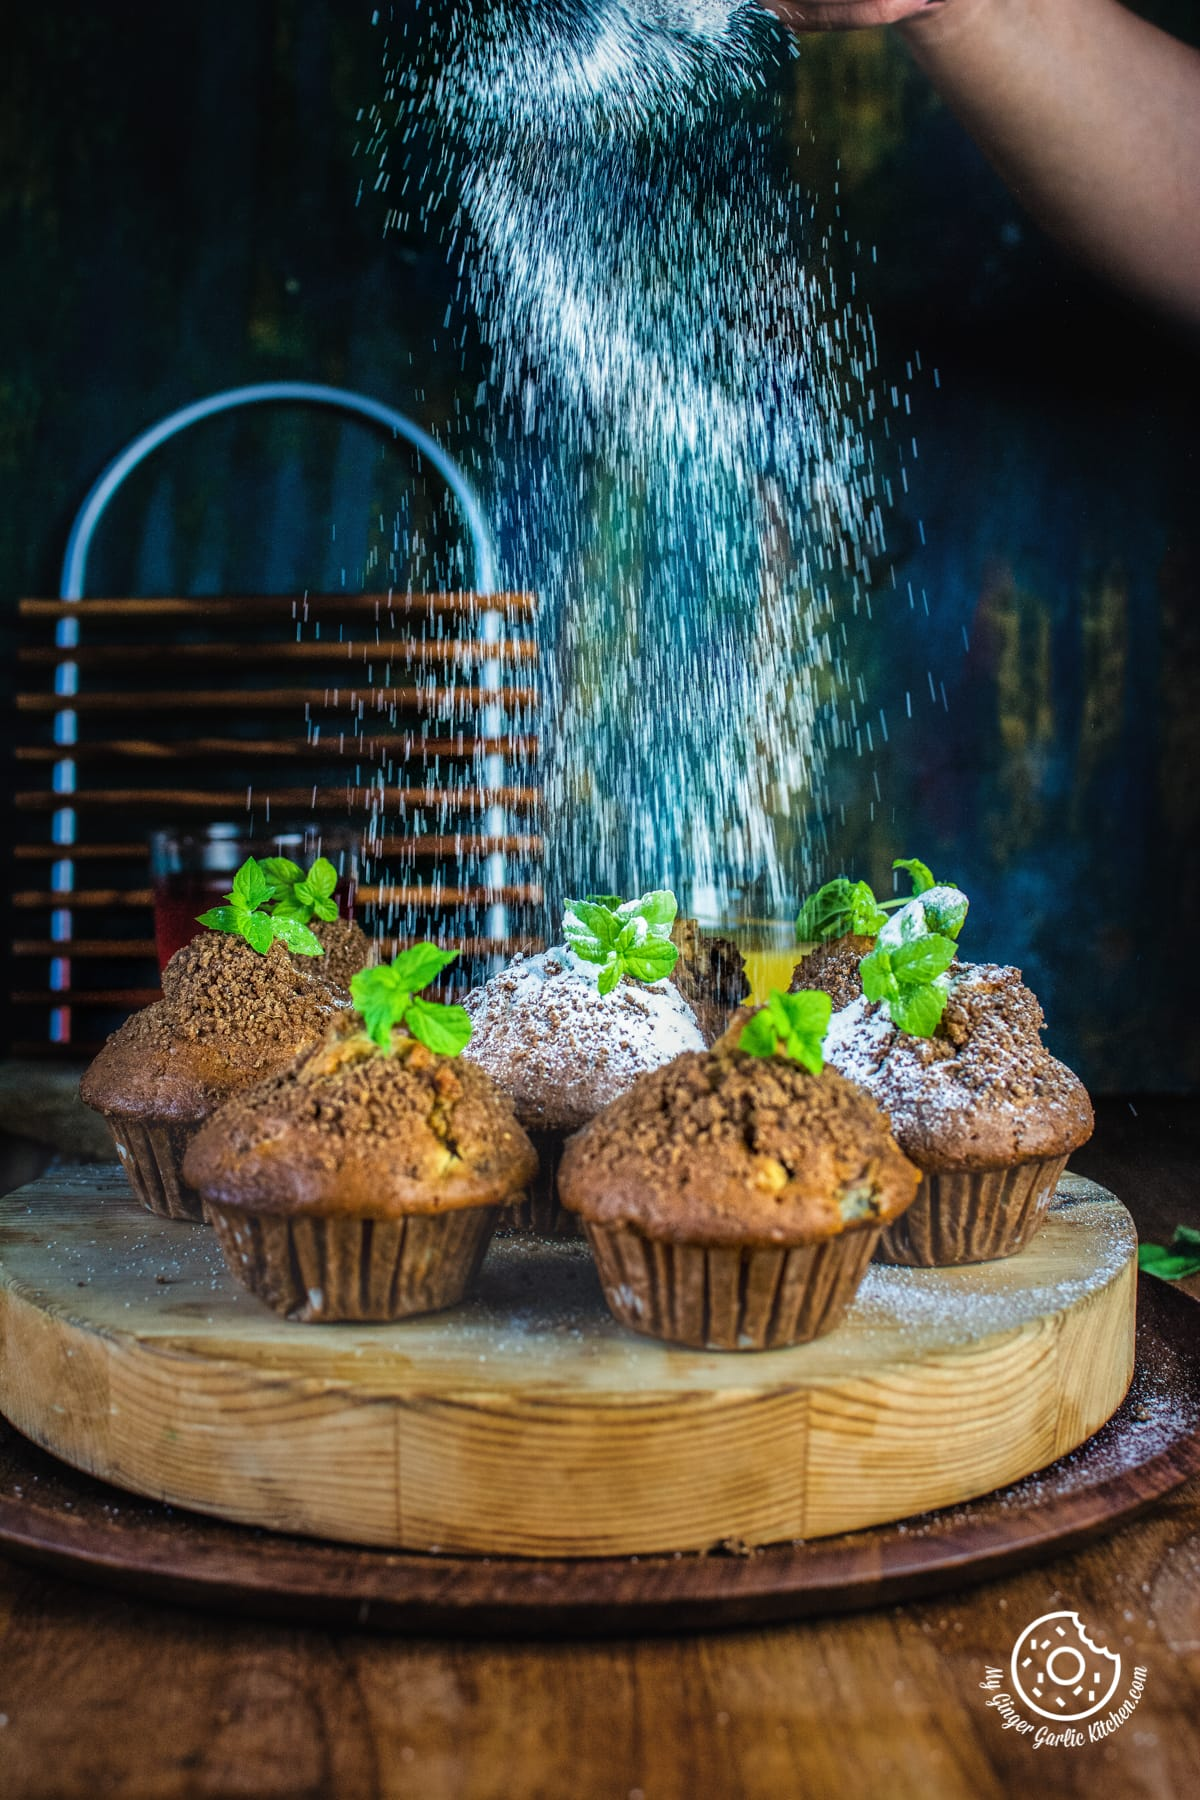 sugar sprinkling on whole wheat peach muffins topped with mint leaves